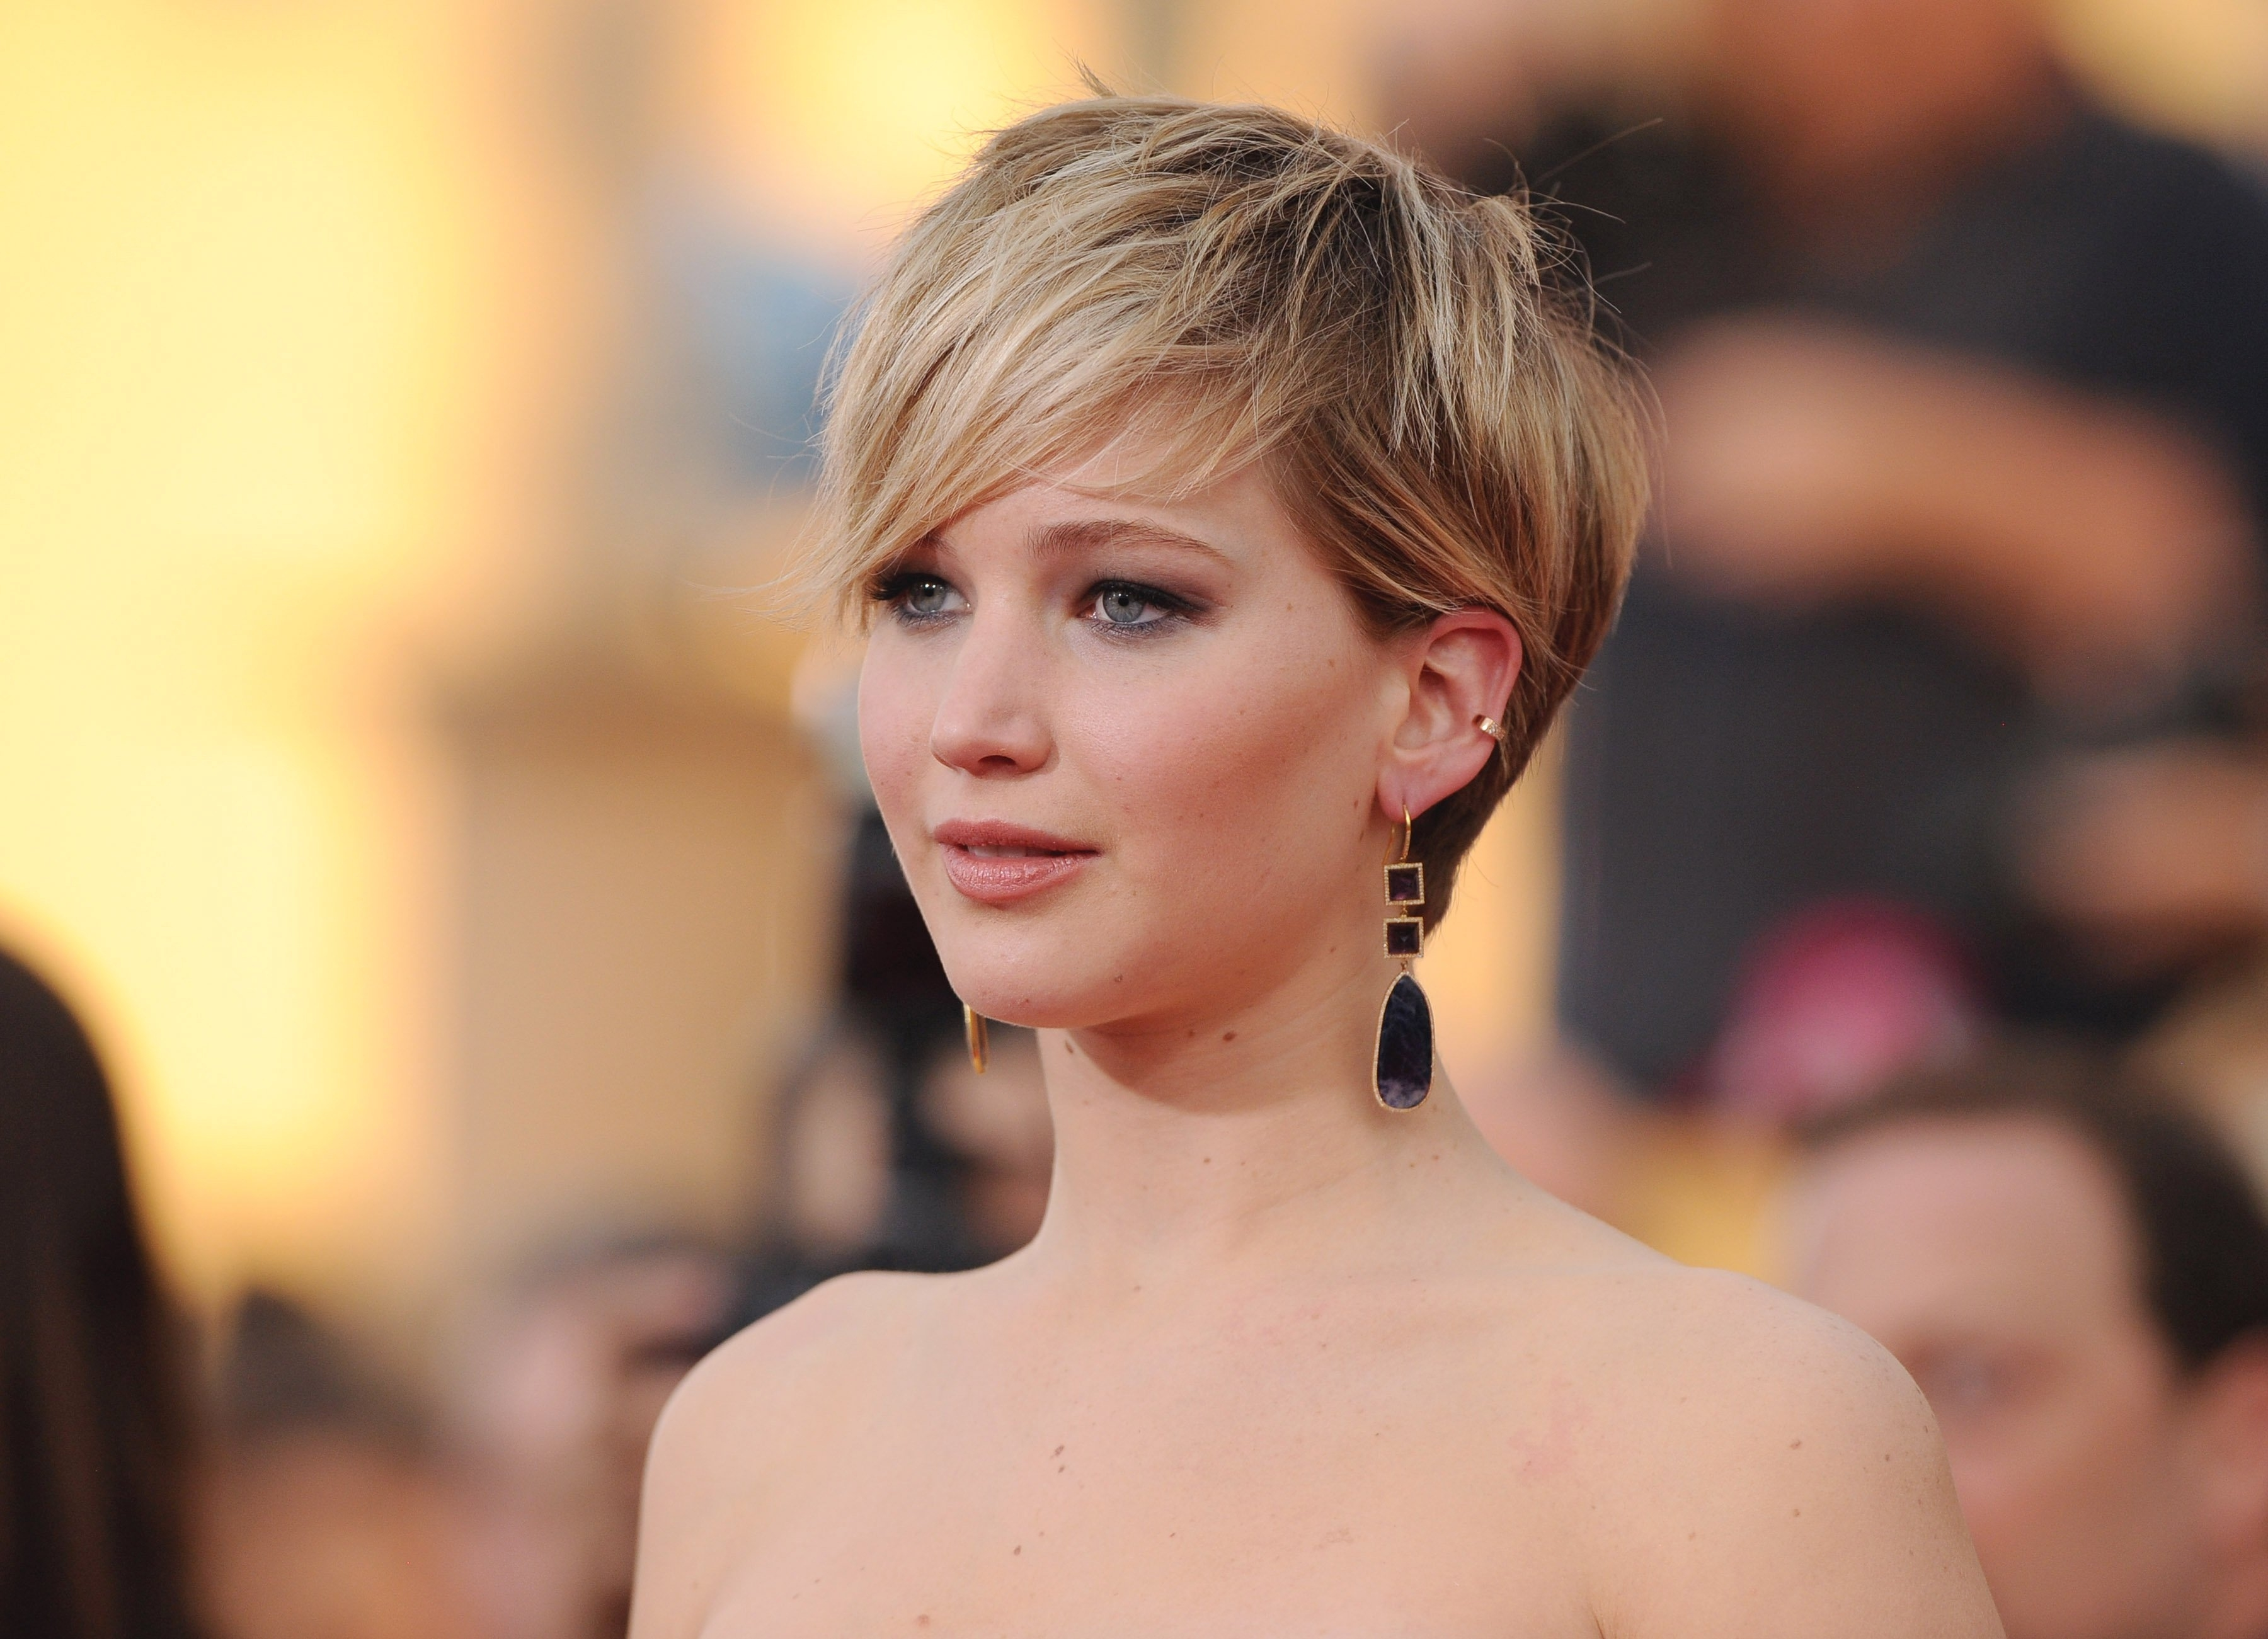 35 Fabulous Short Haircuts For Thick Hair with regard to Haircut For Thick Hair Short